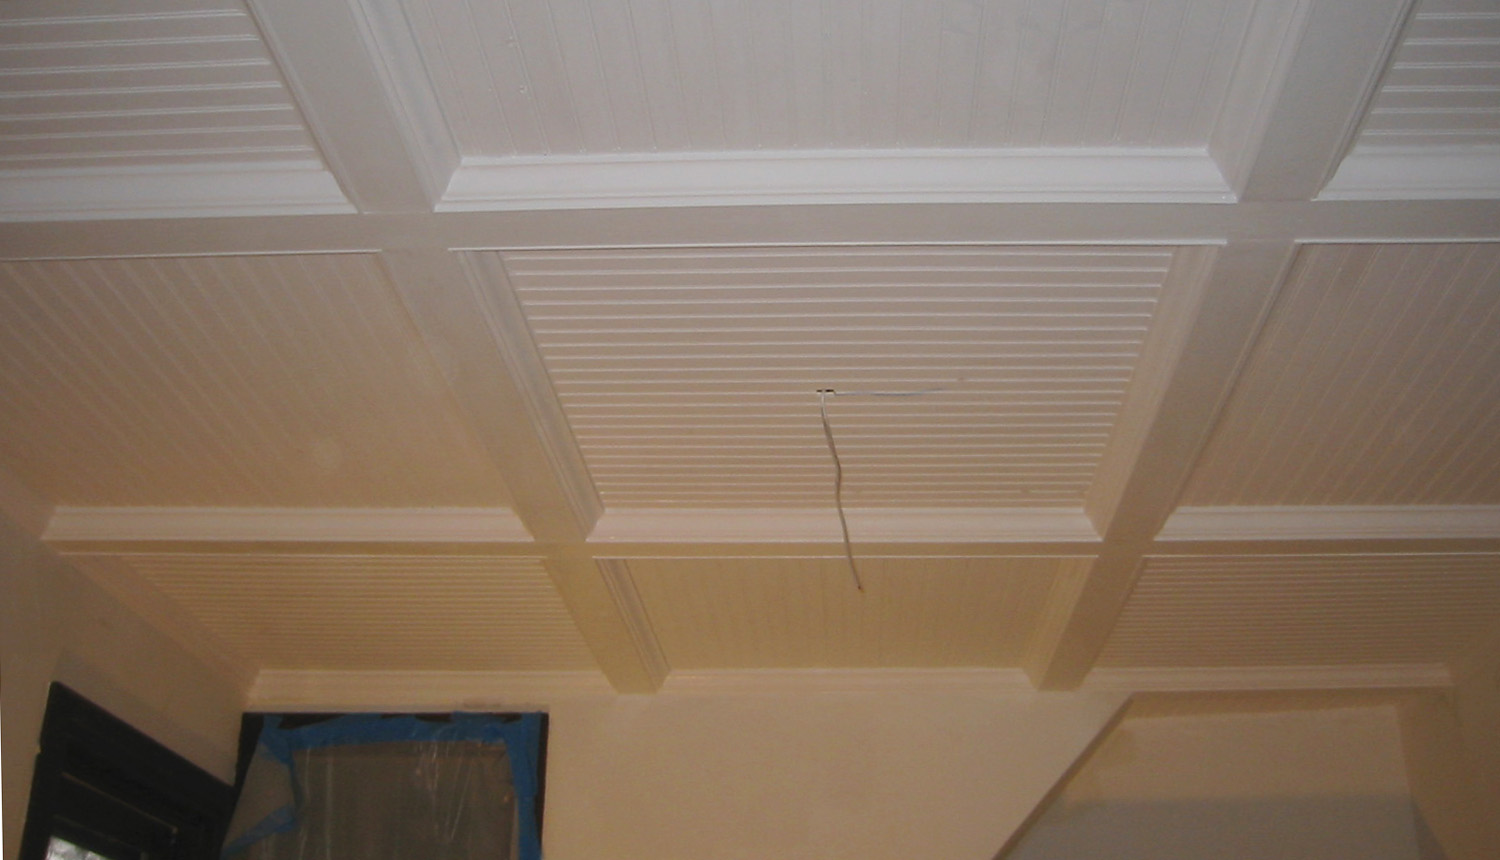 Removable Basement Wall Panels And Ceiling